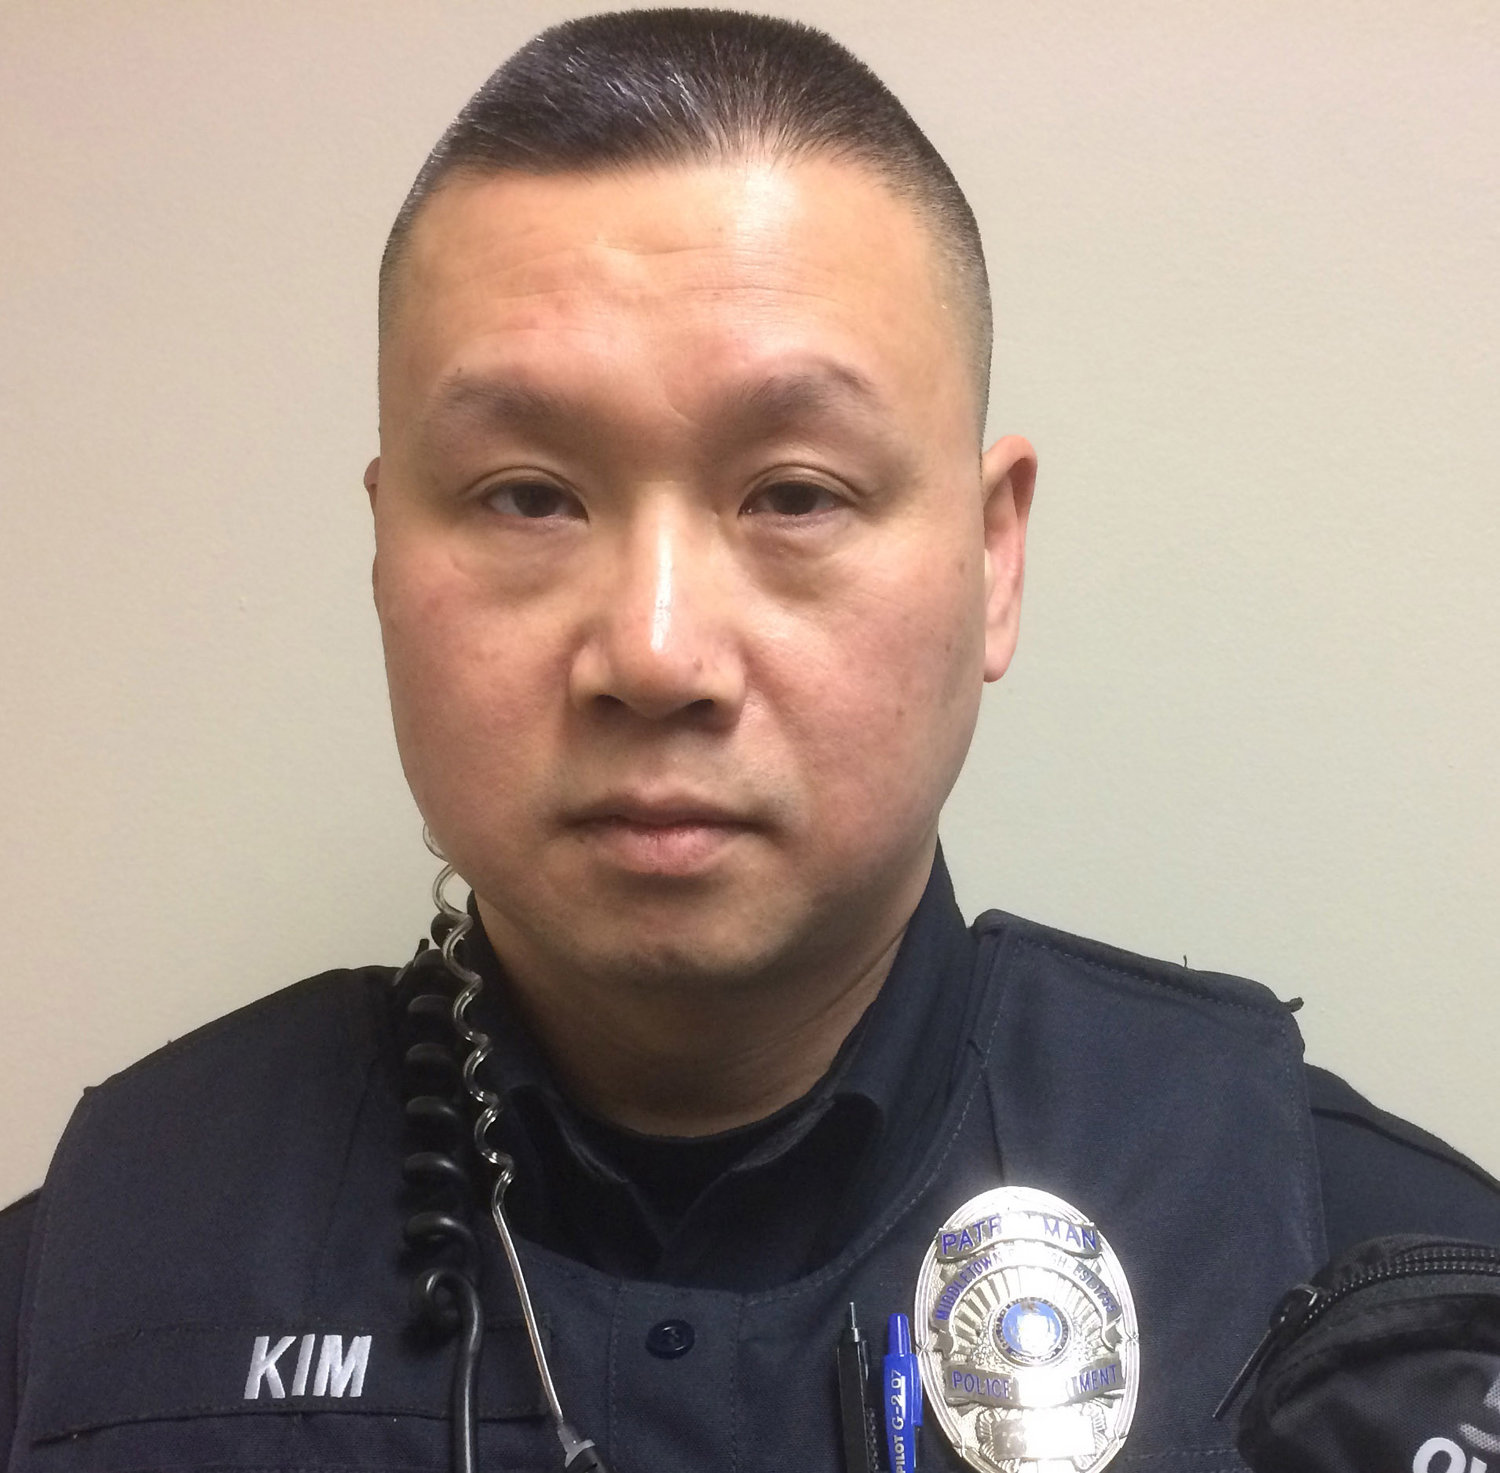 Hyung Kim has been a part-time patrol officer with the Middletown Police Department since June 2016.